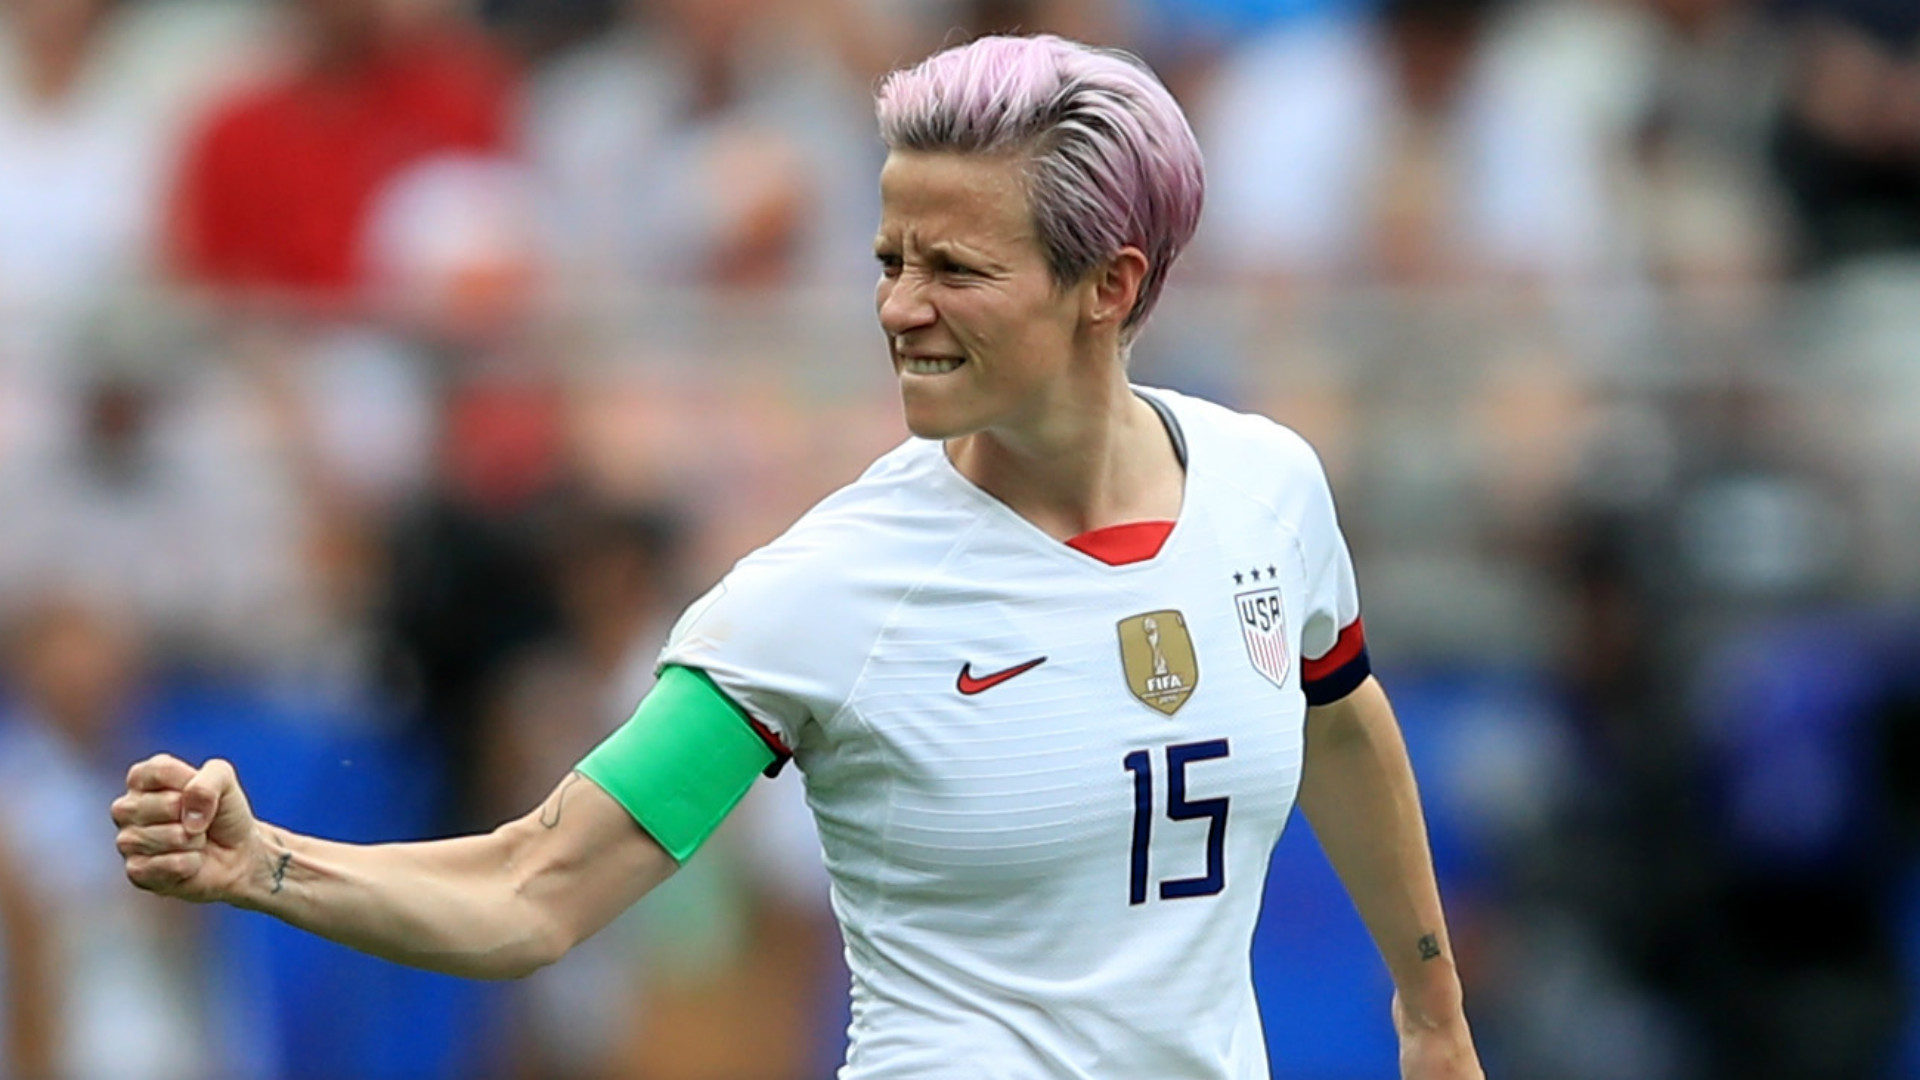 Women's World Cup 2019: Rattled USWNT bailed out against Spain, seals dream quarterfinal